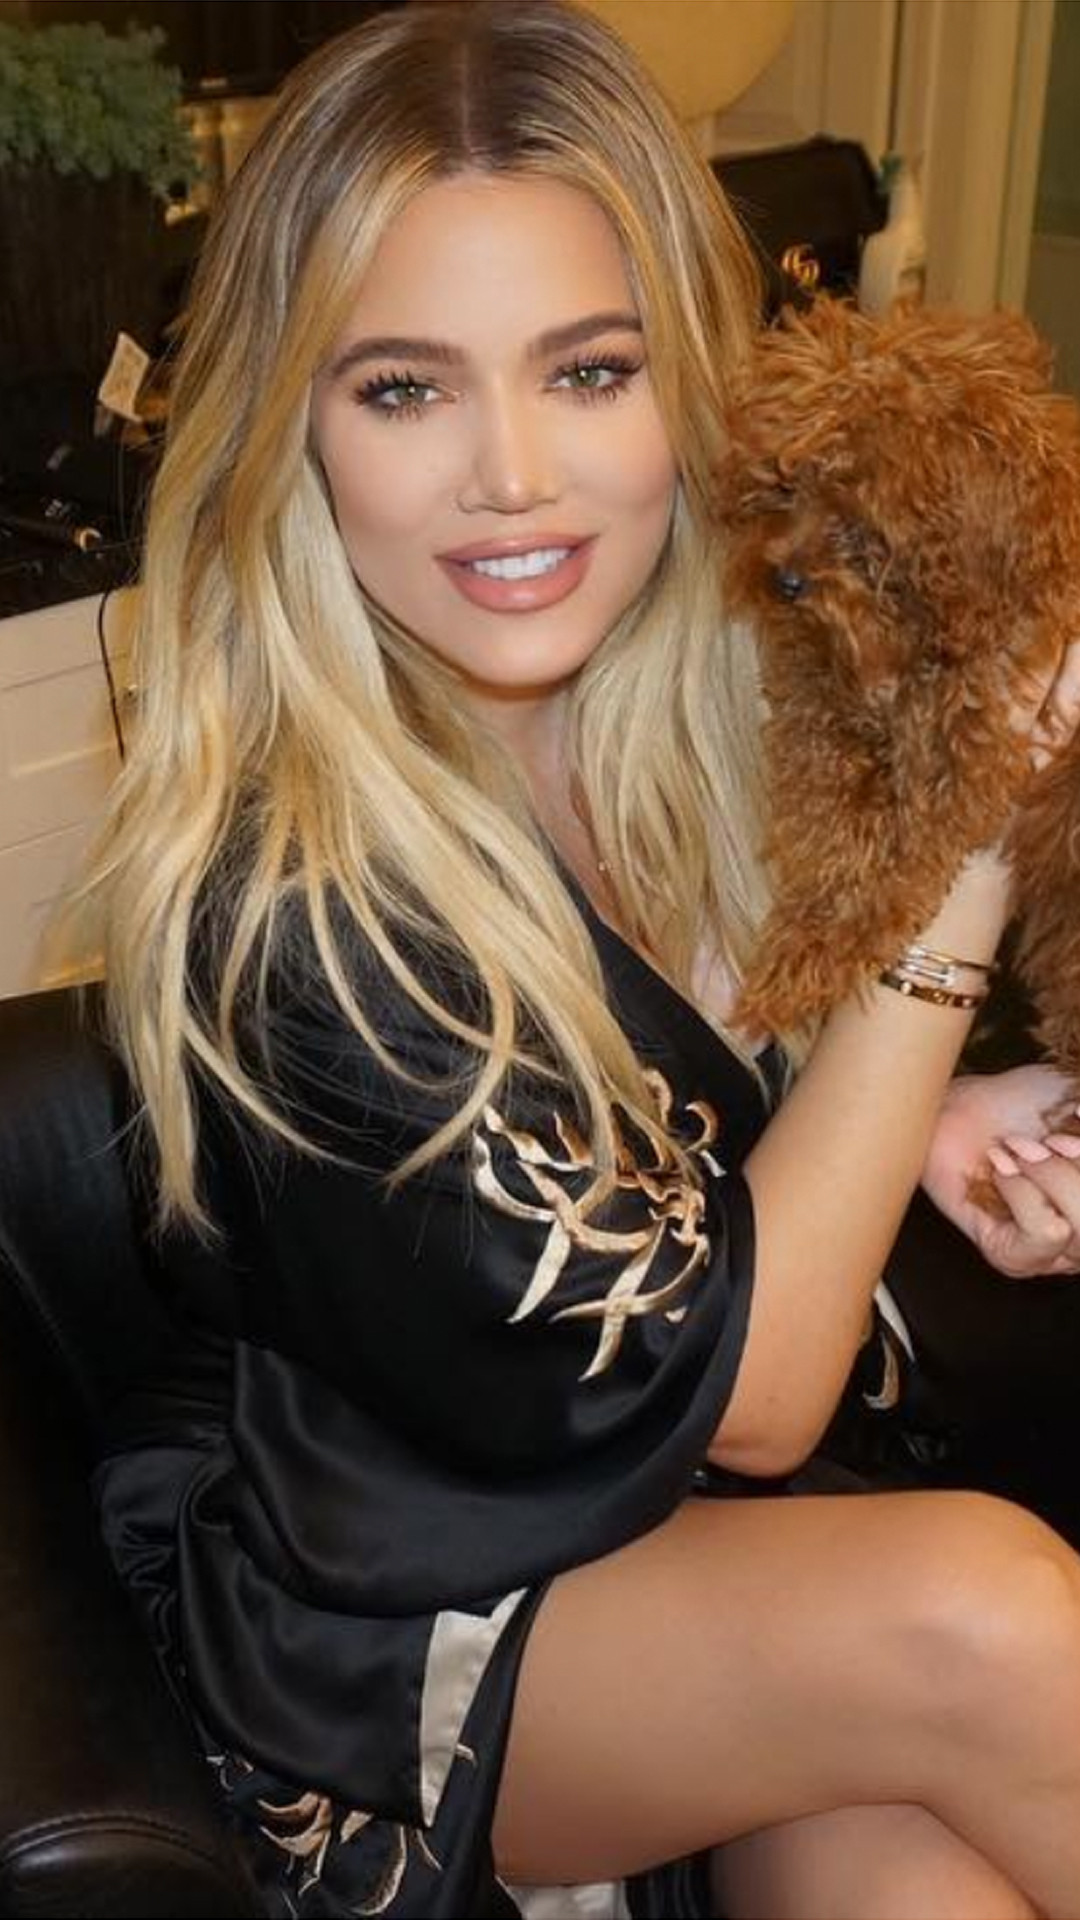 khloe kardashian - photo #13